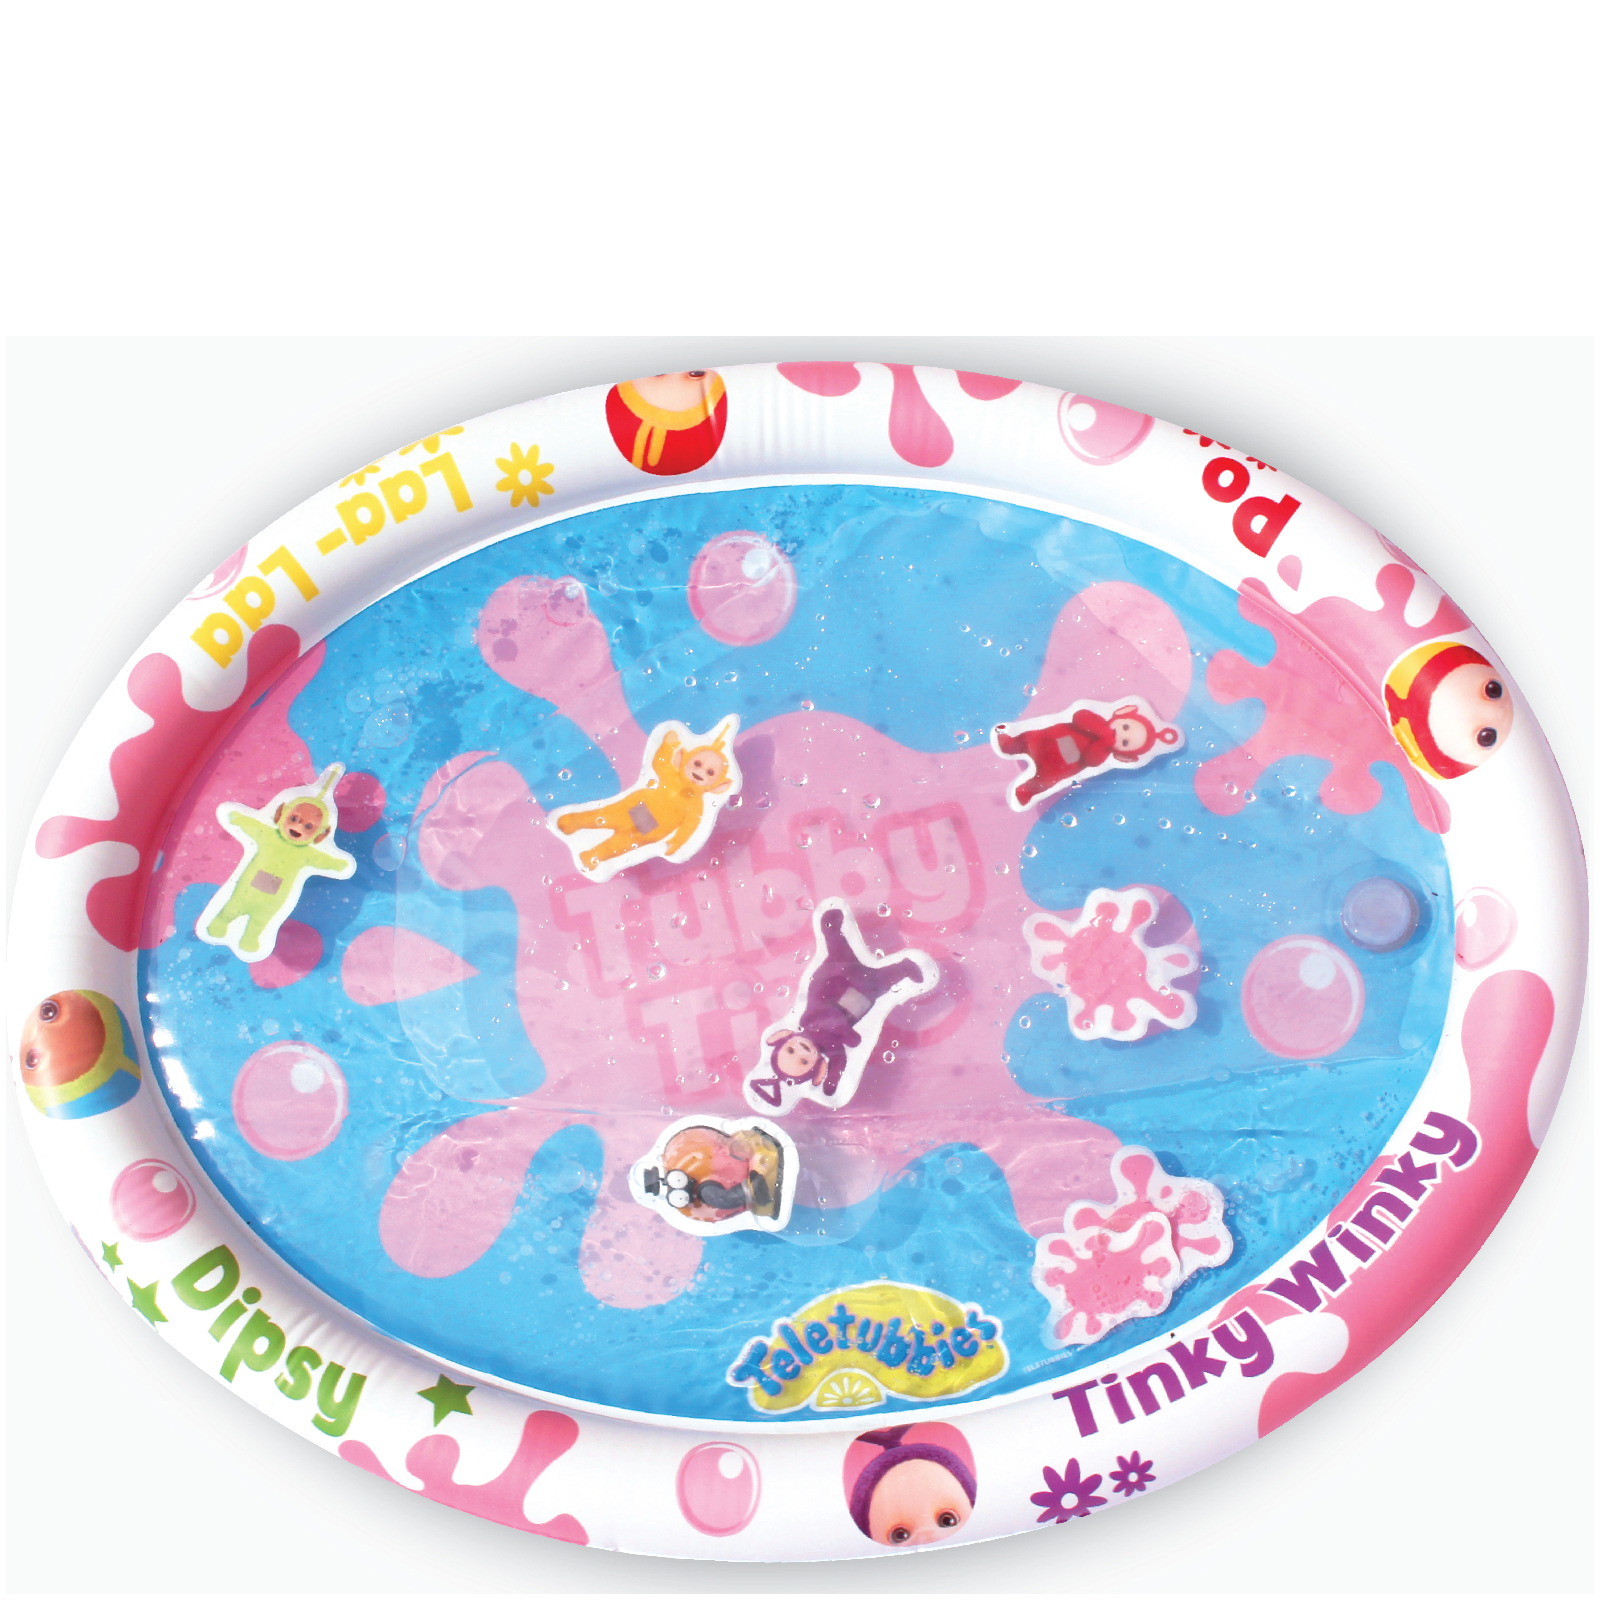 Mini Piscine Gonflable Télétubbies